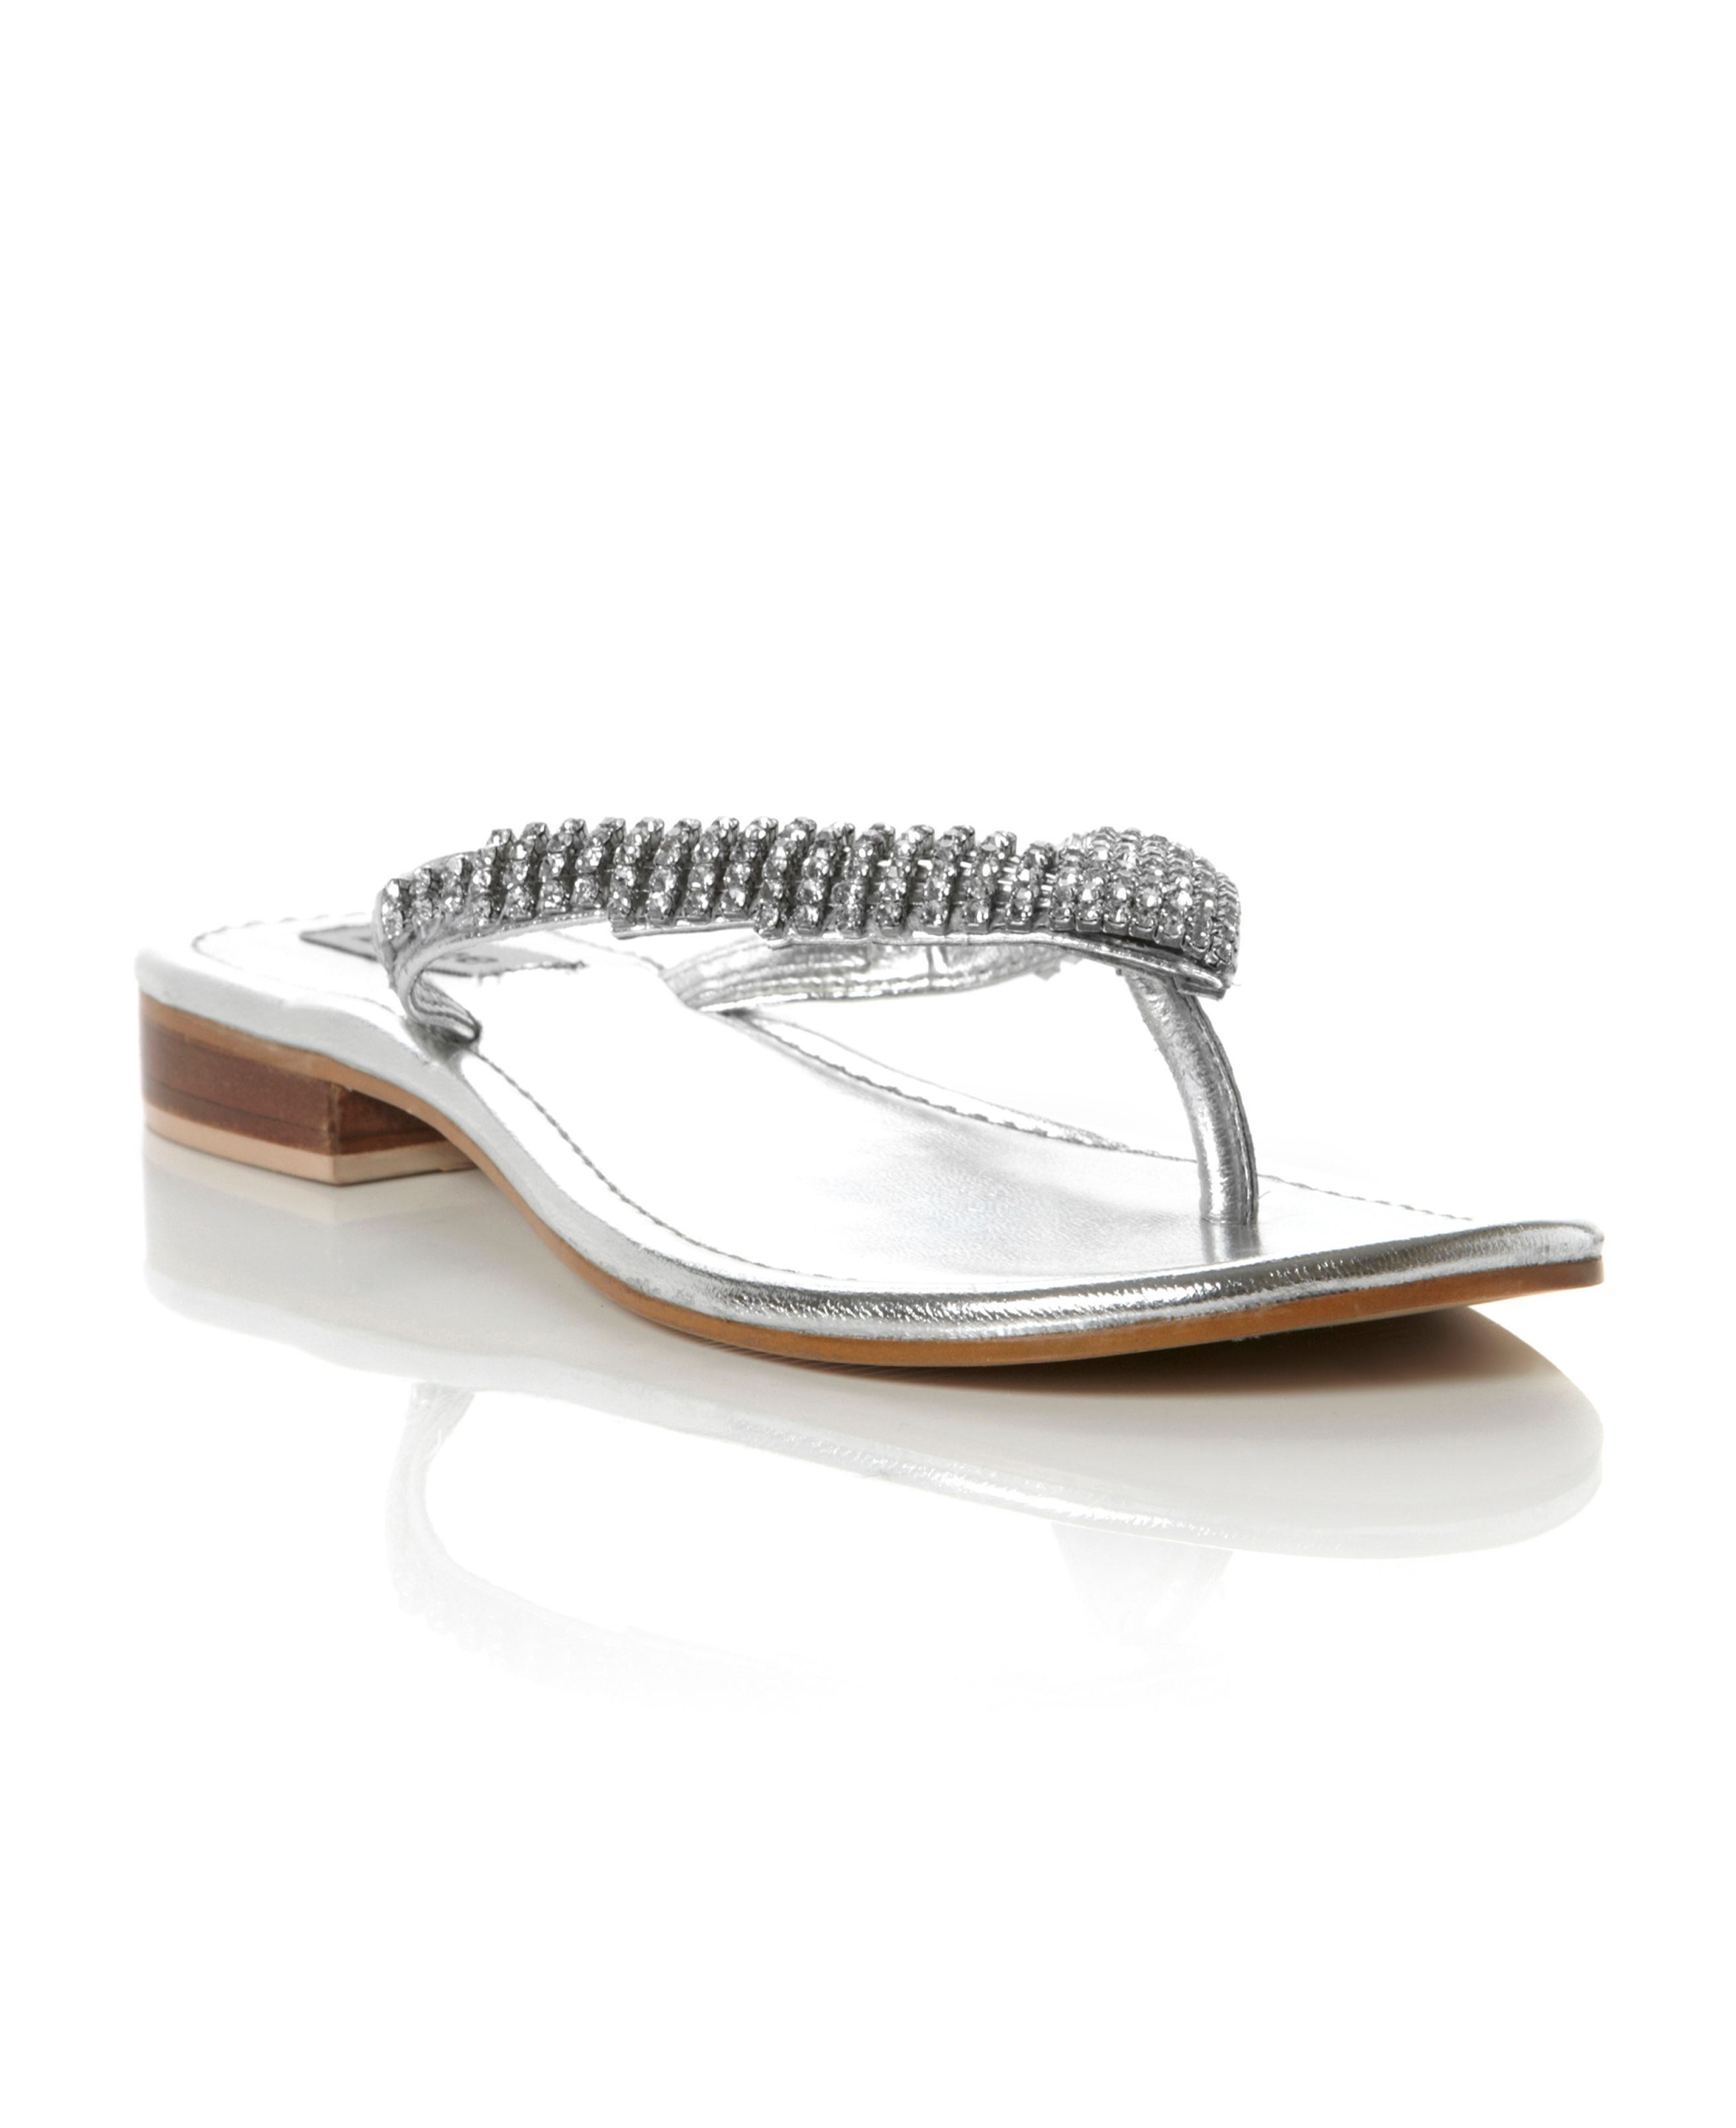 Keeper Diamante Toe Post Flip Flop Sandals